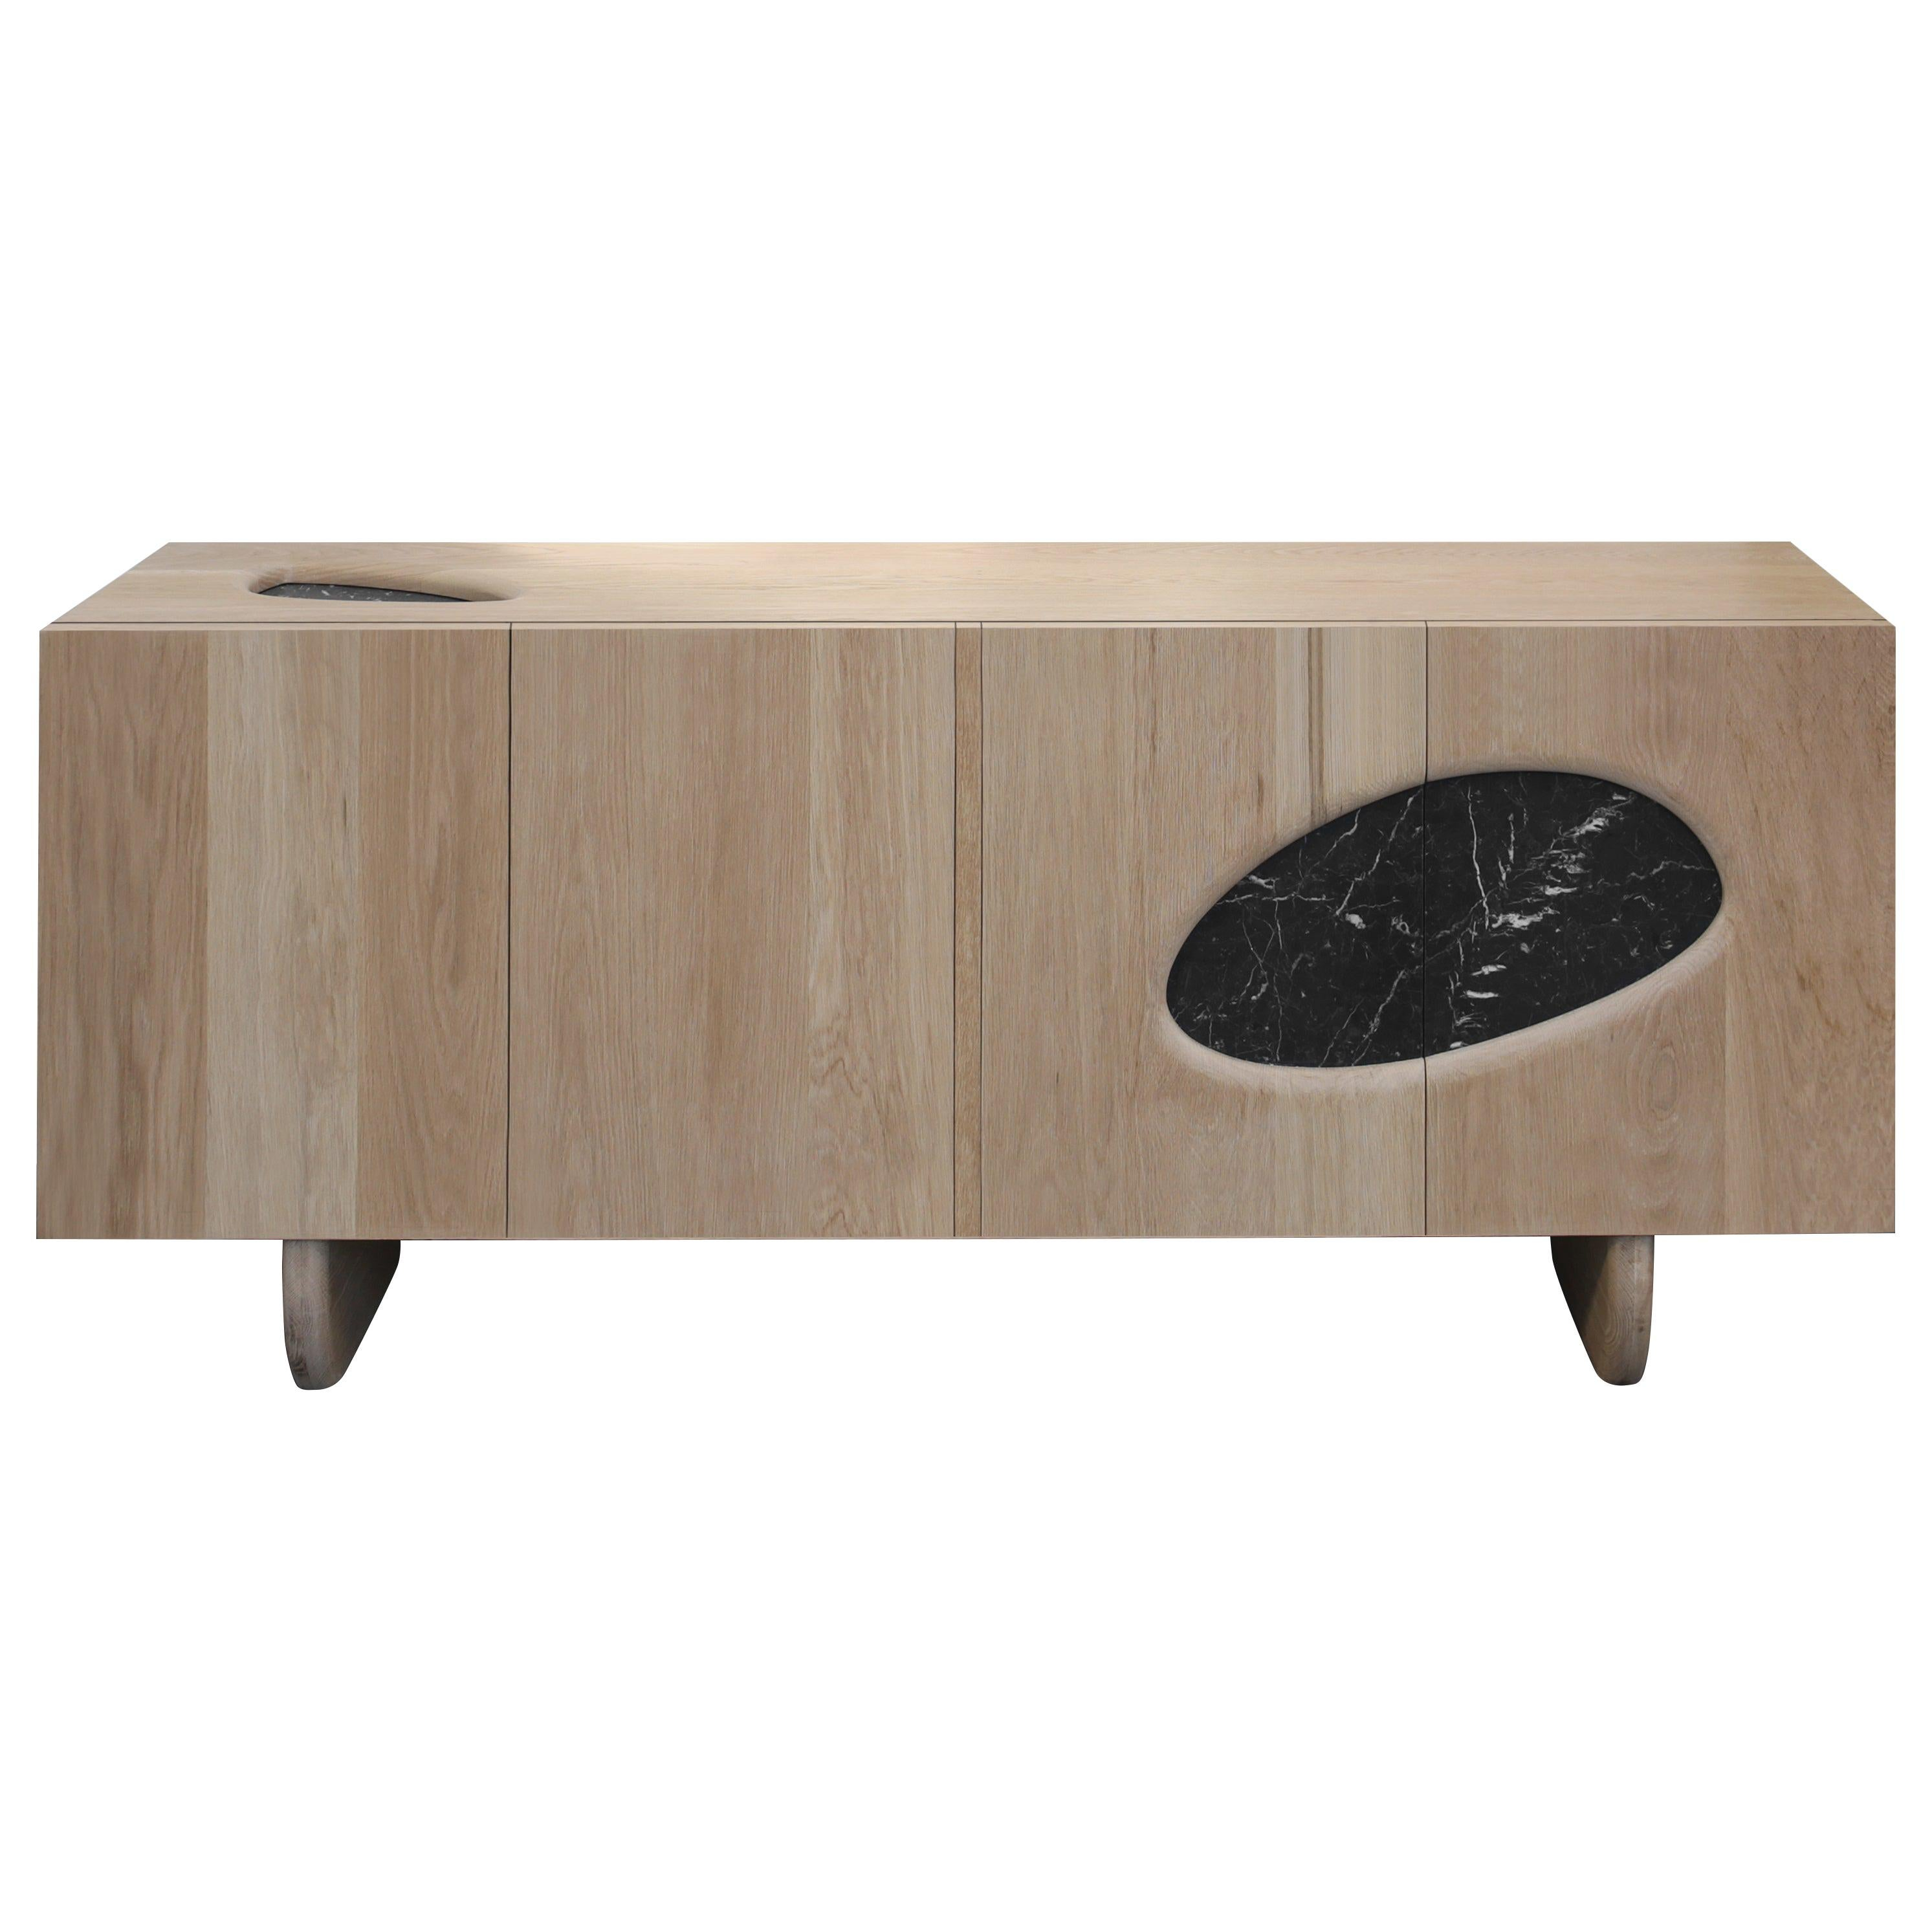 XV, White Oak Credenza with Marble from Collection Noviembre by Joel Escalona